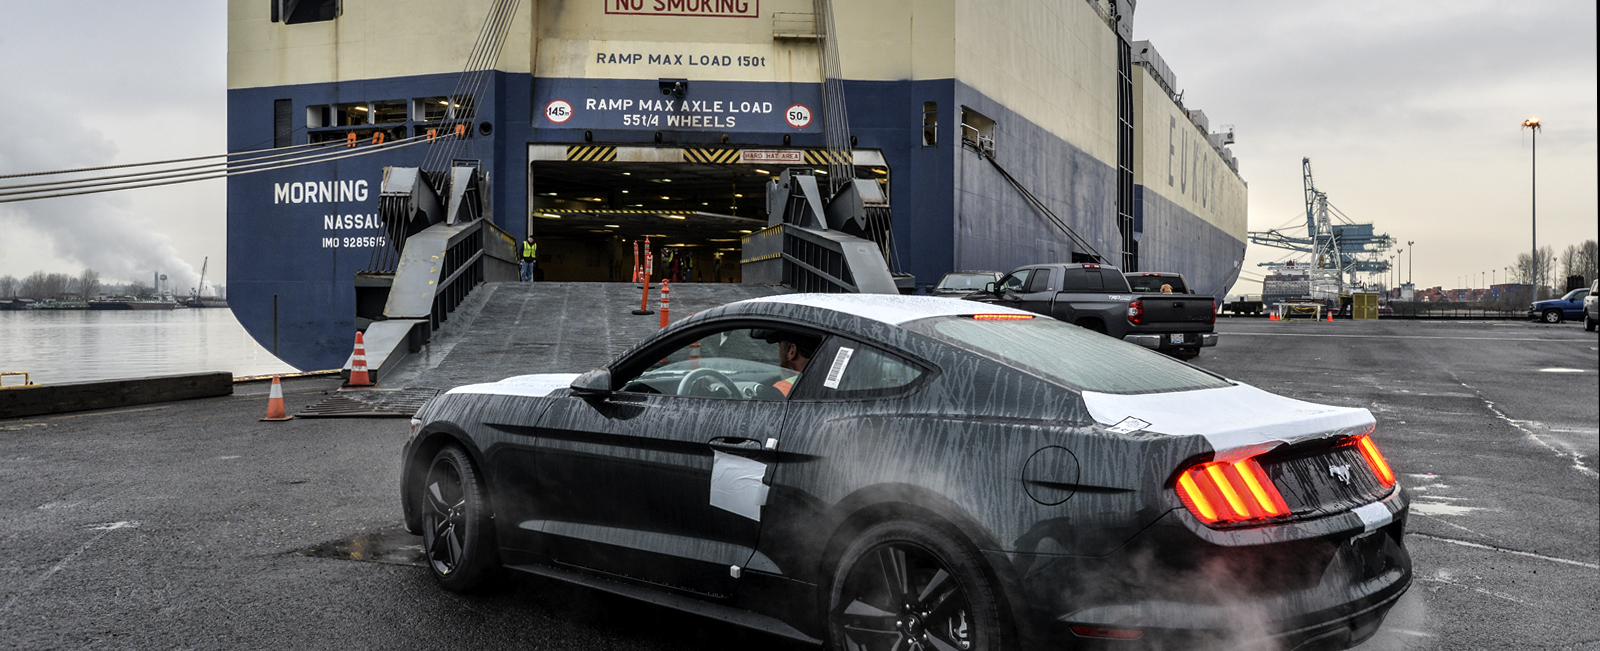 Port Auto Business Evolves as Mustang Goes Global